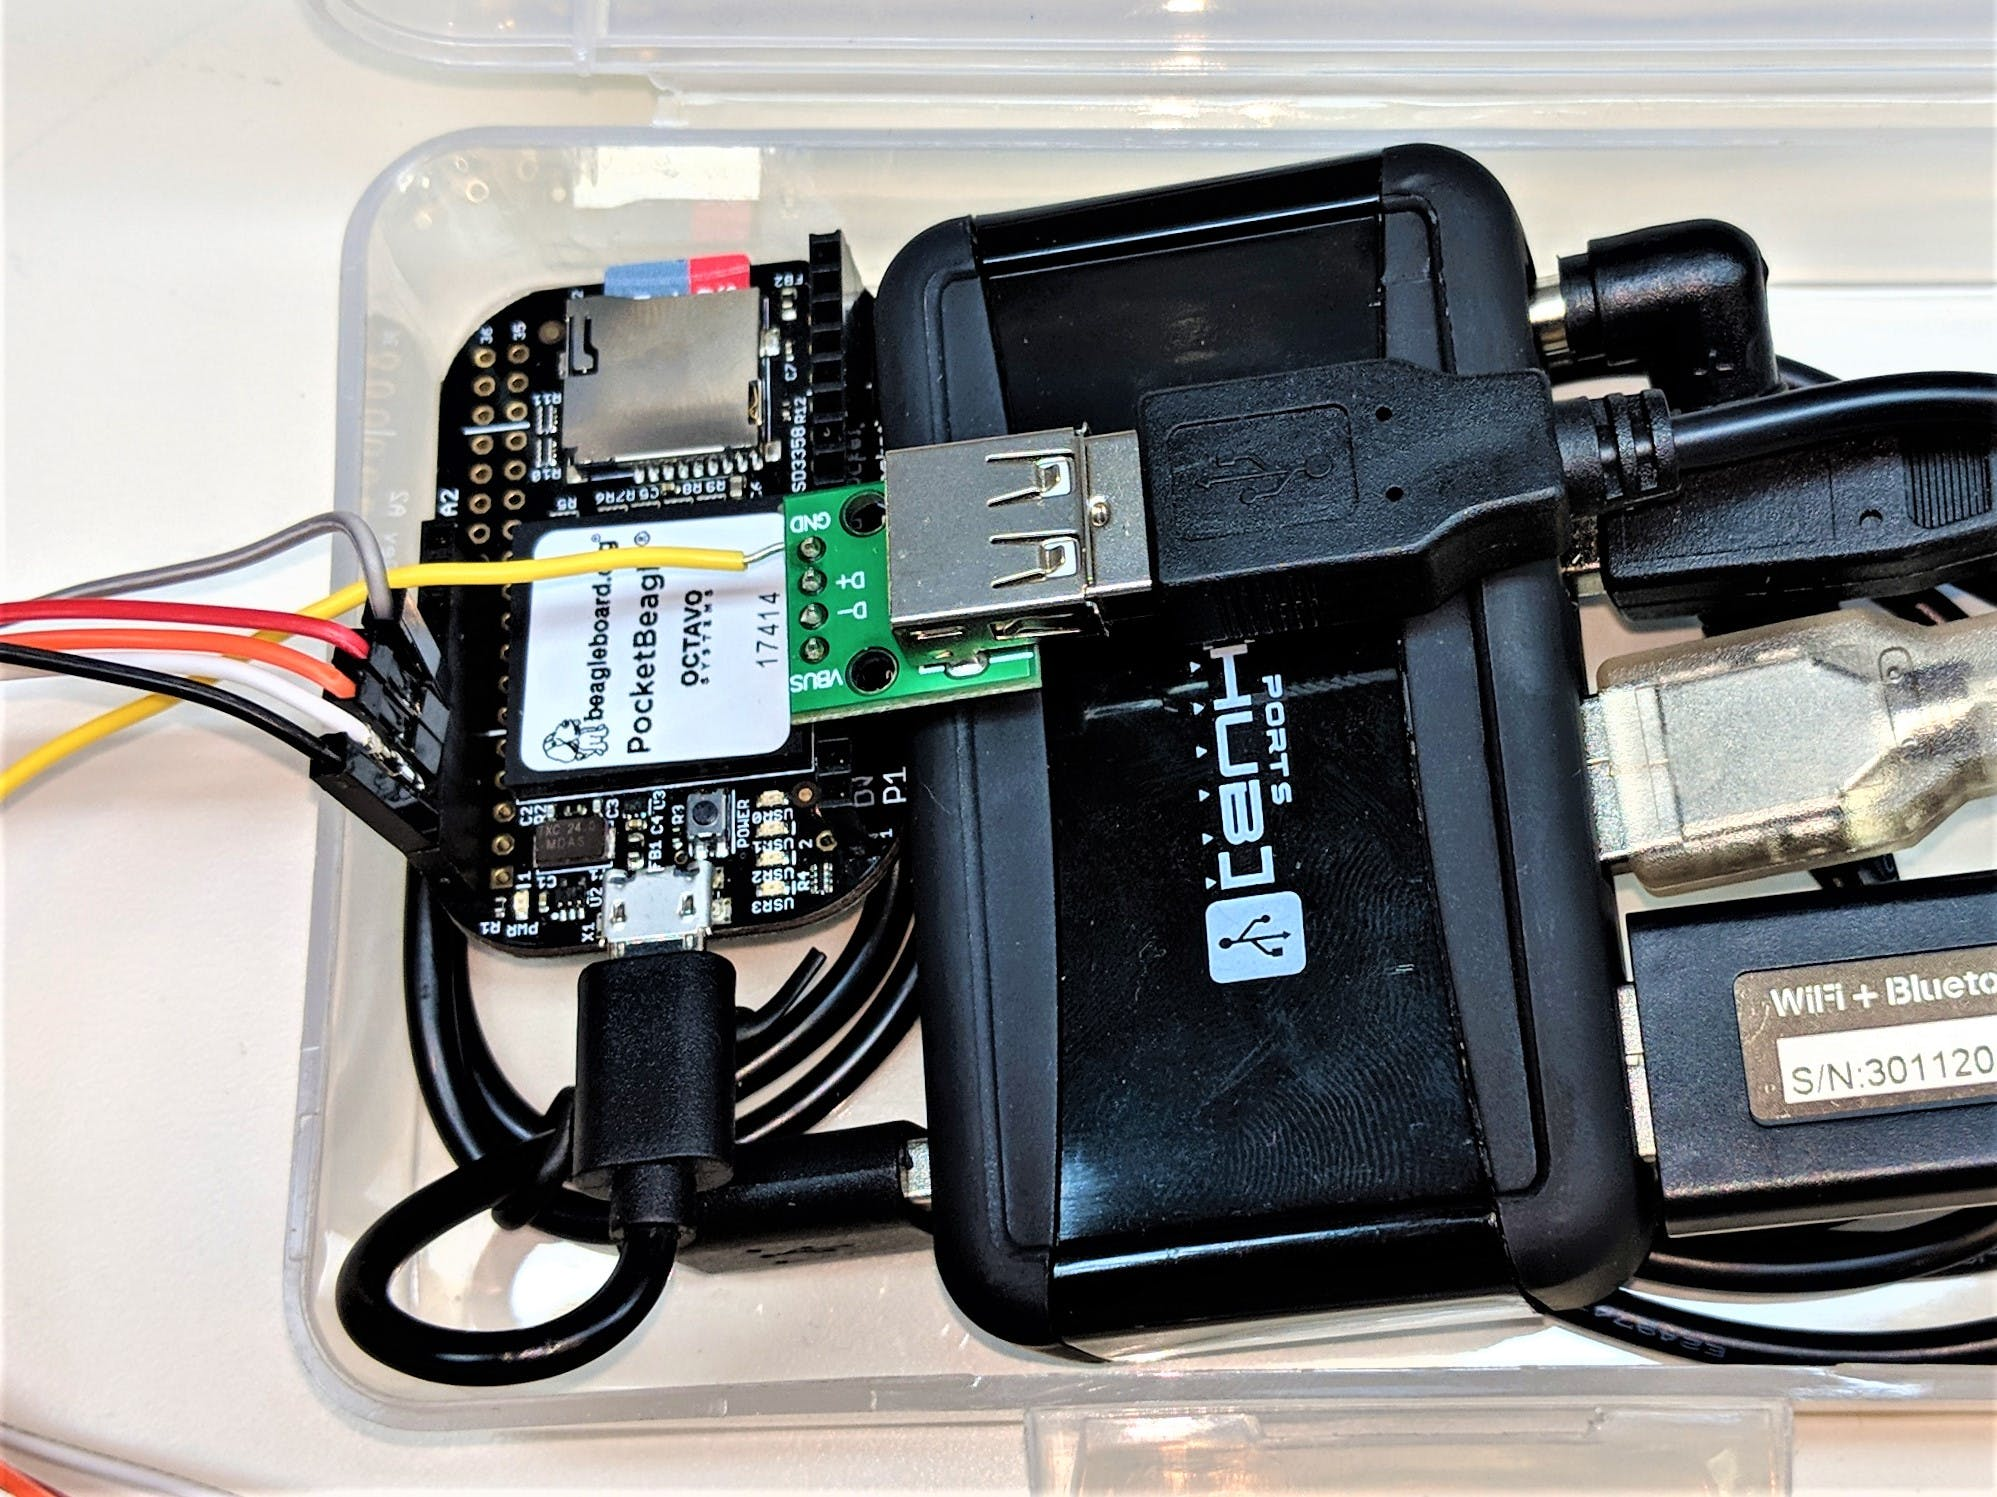 PocketBeagle connected to USB hub for power